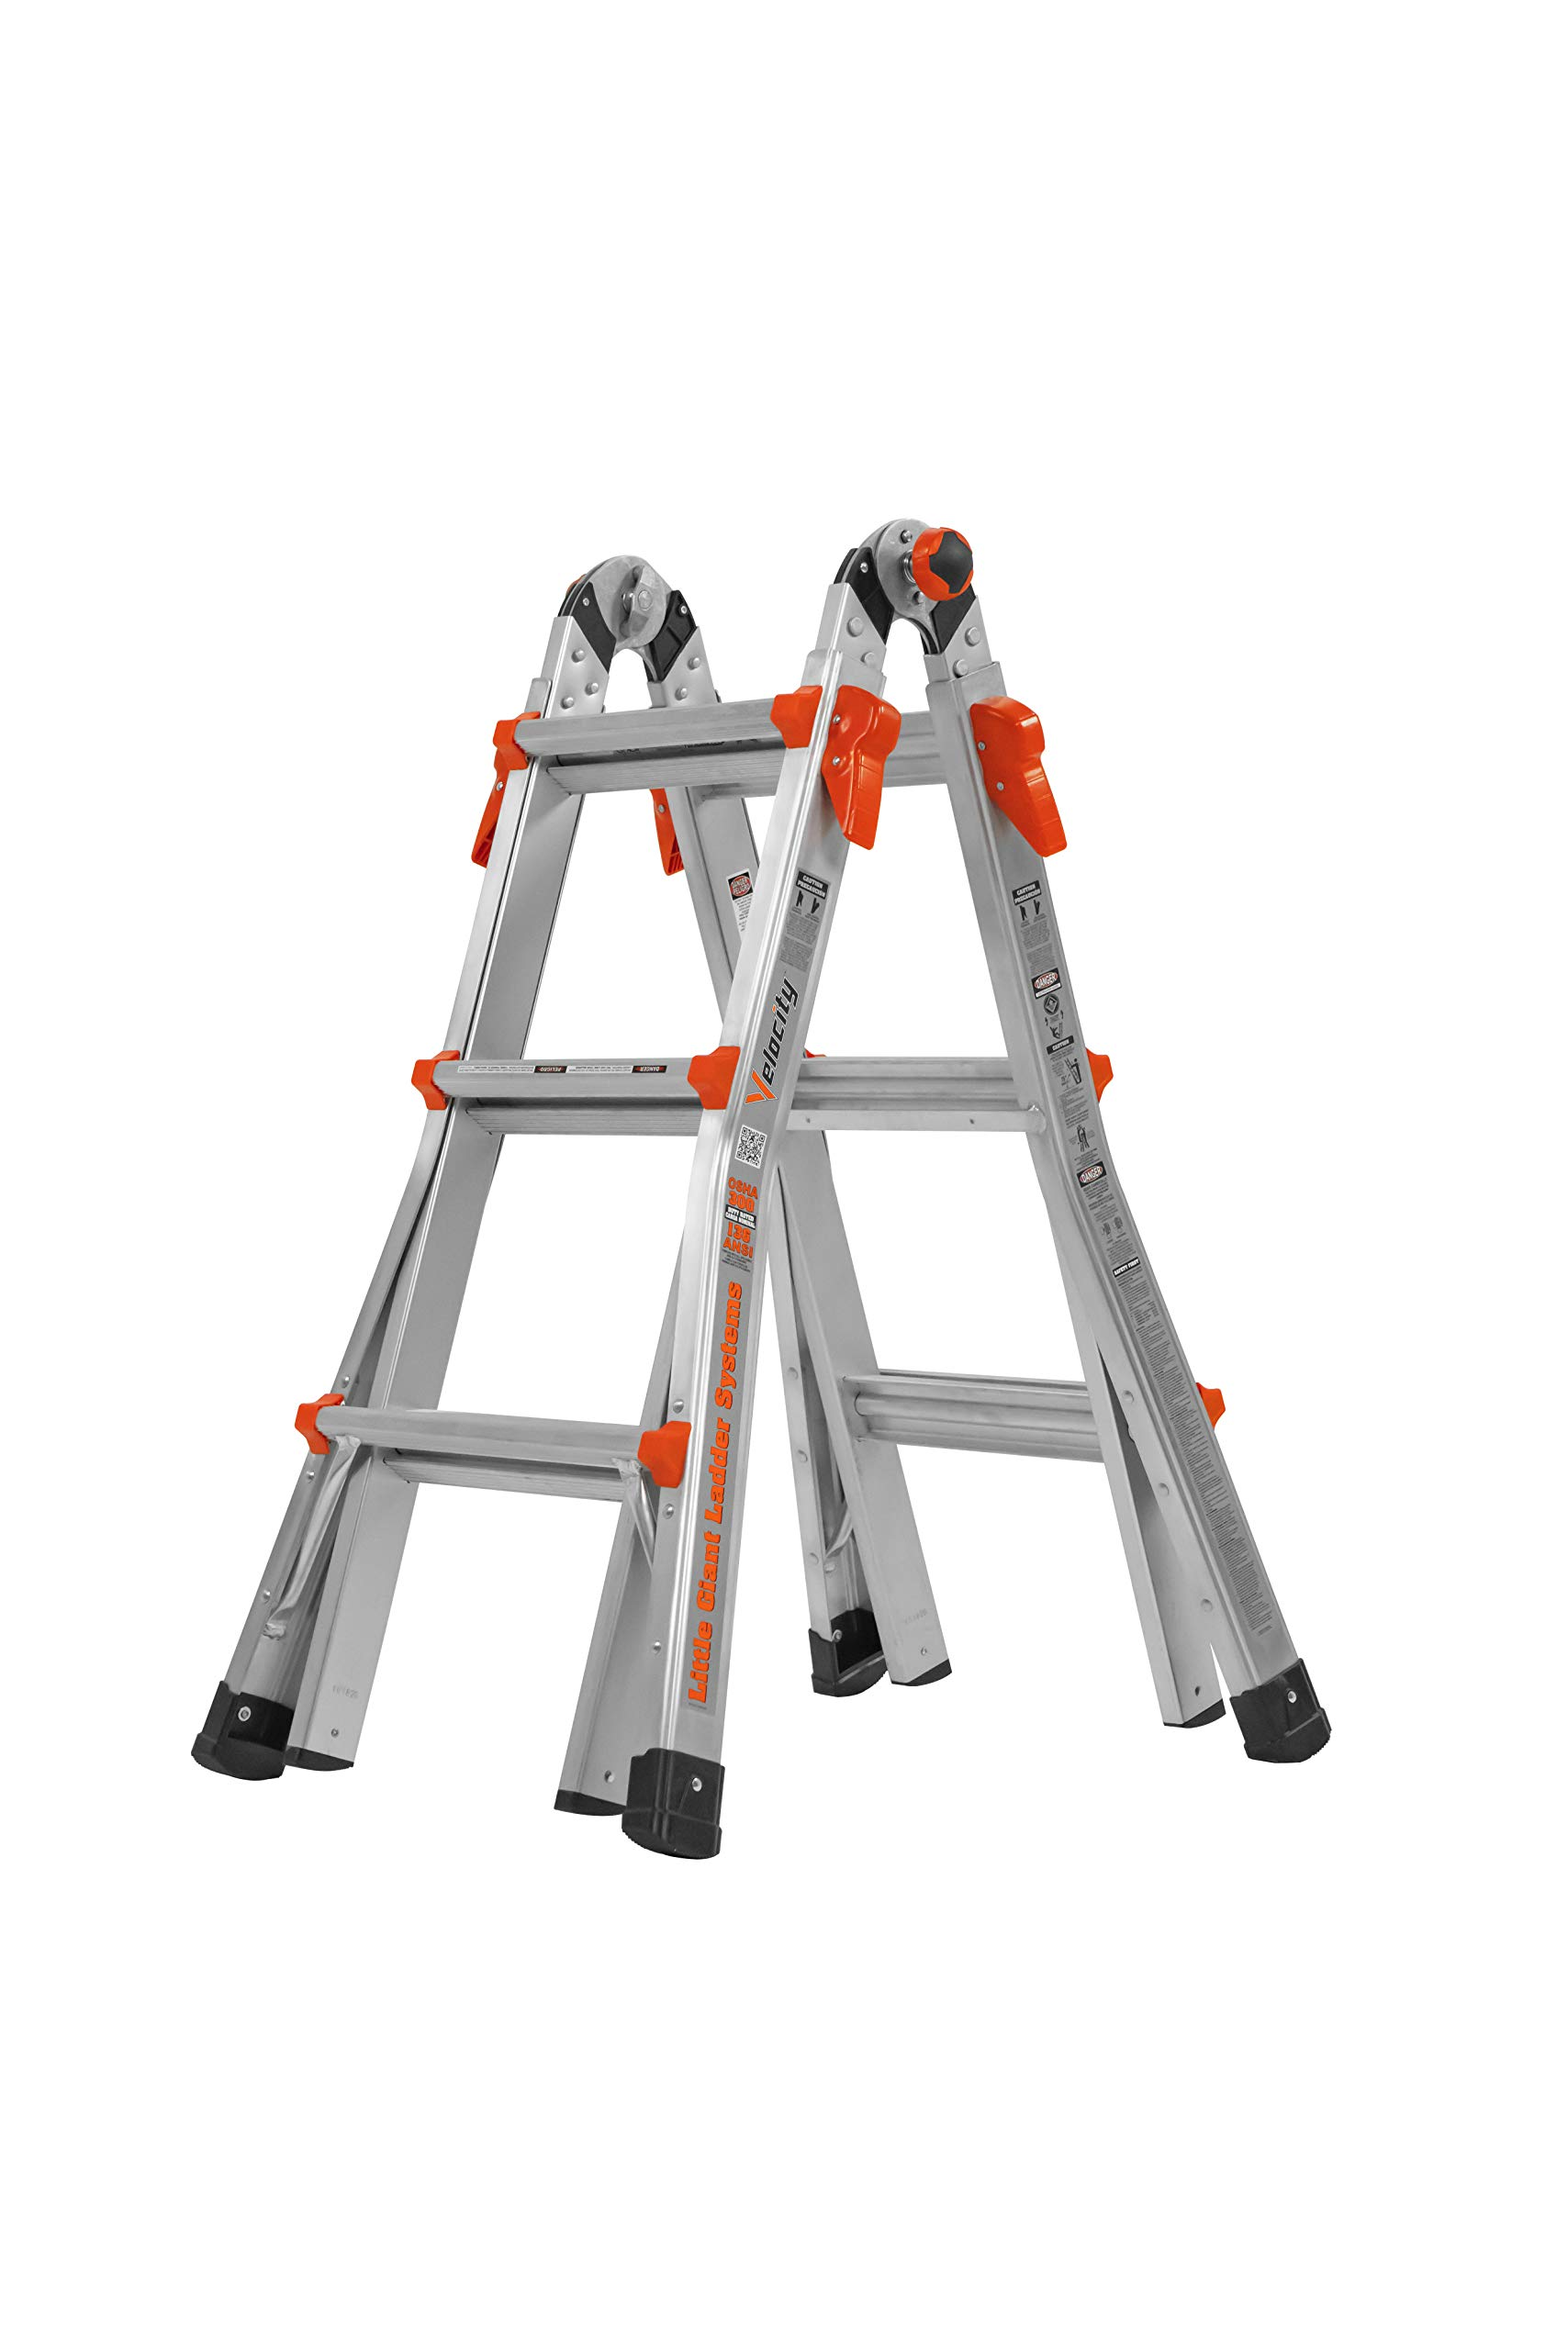 Little Giant 13-Foot Velocity Multi-Use Ladder, 300-Pound Duty Rating, 15413-001 by Little Giant Ladder Systems